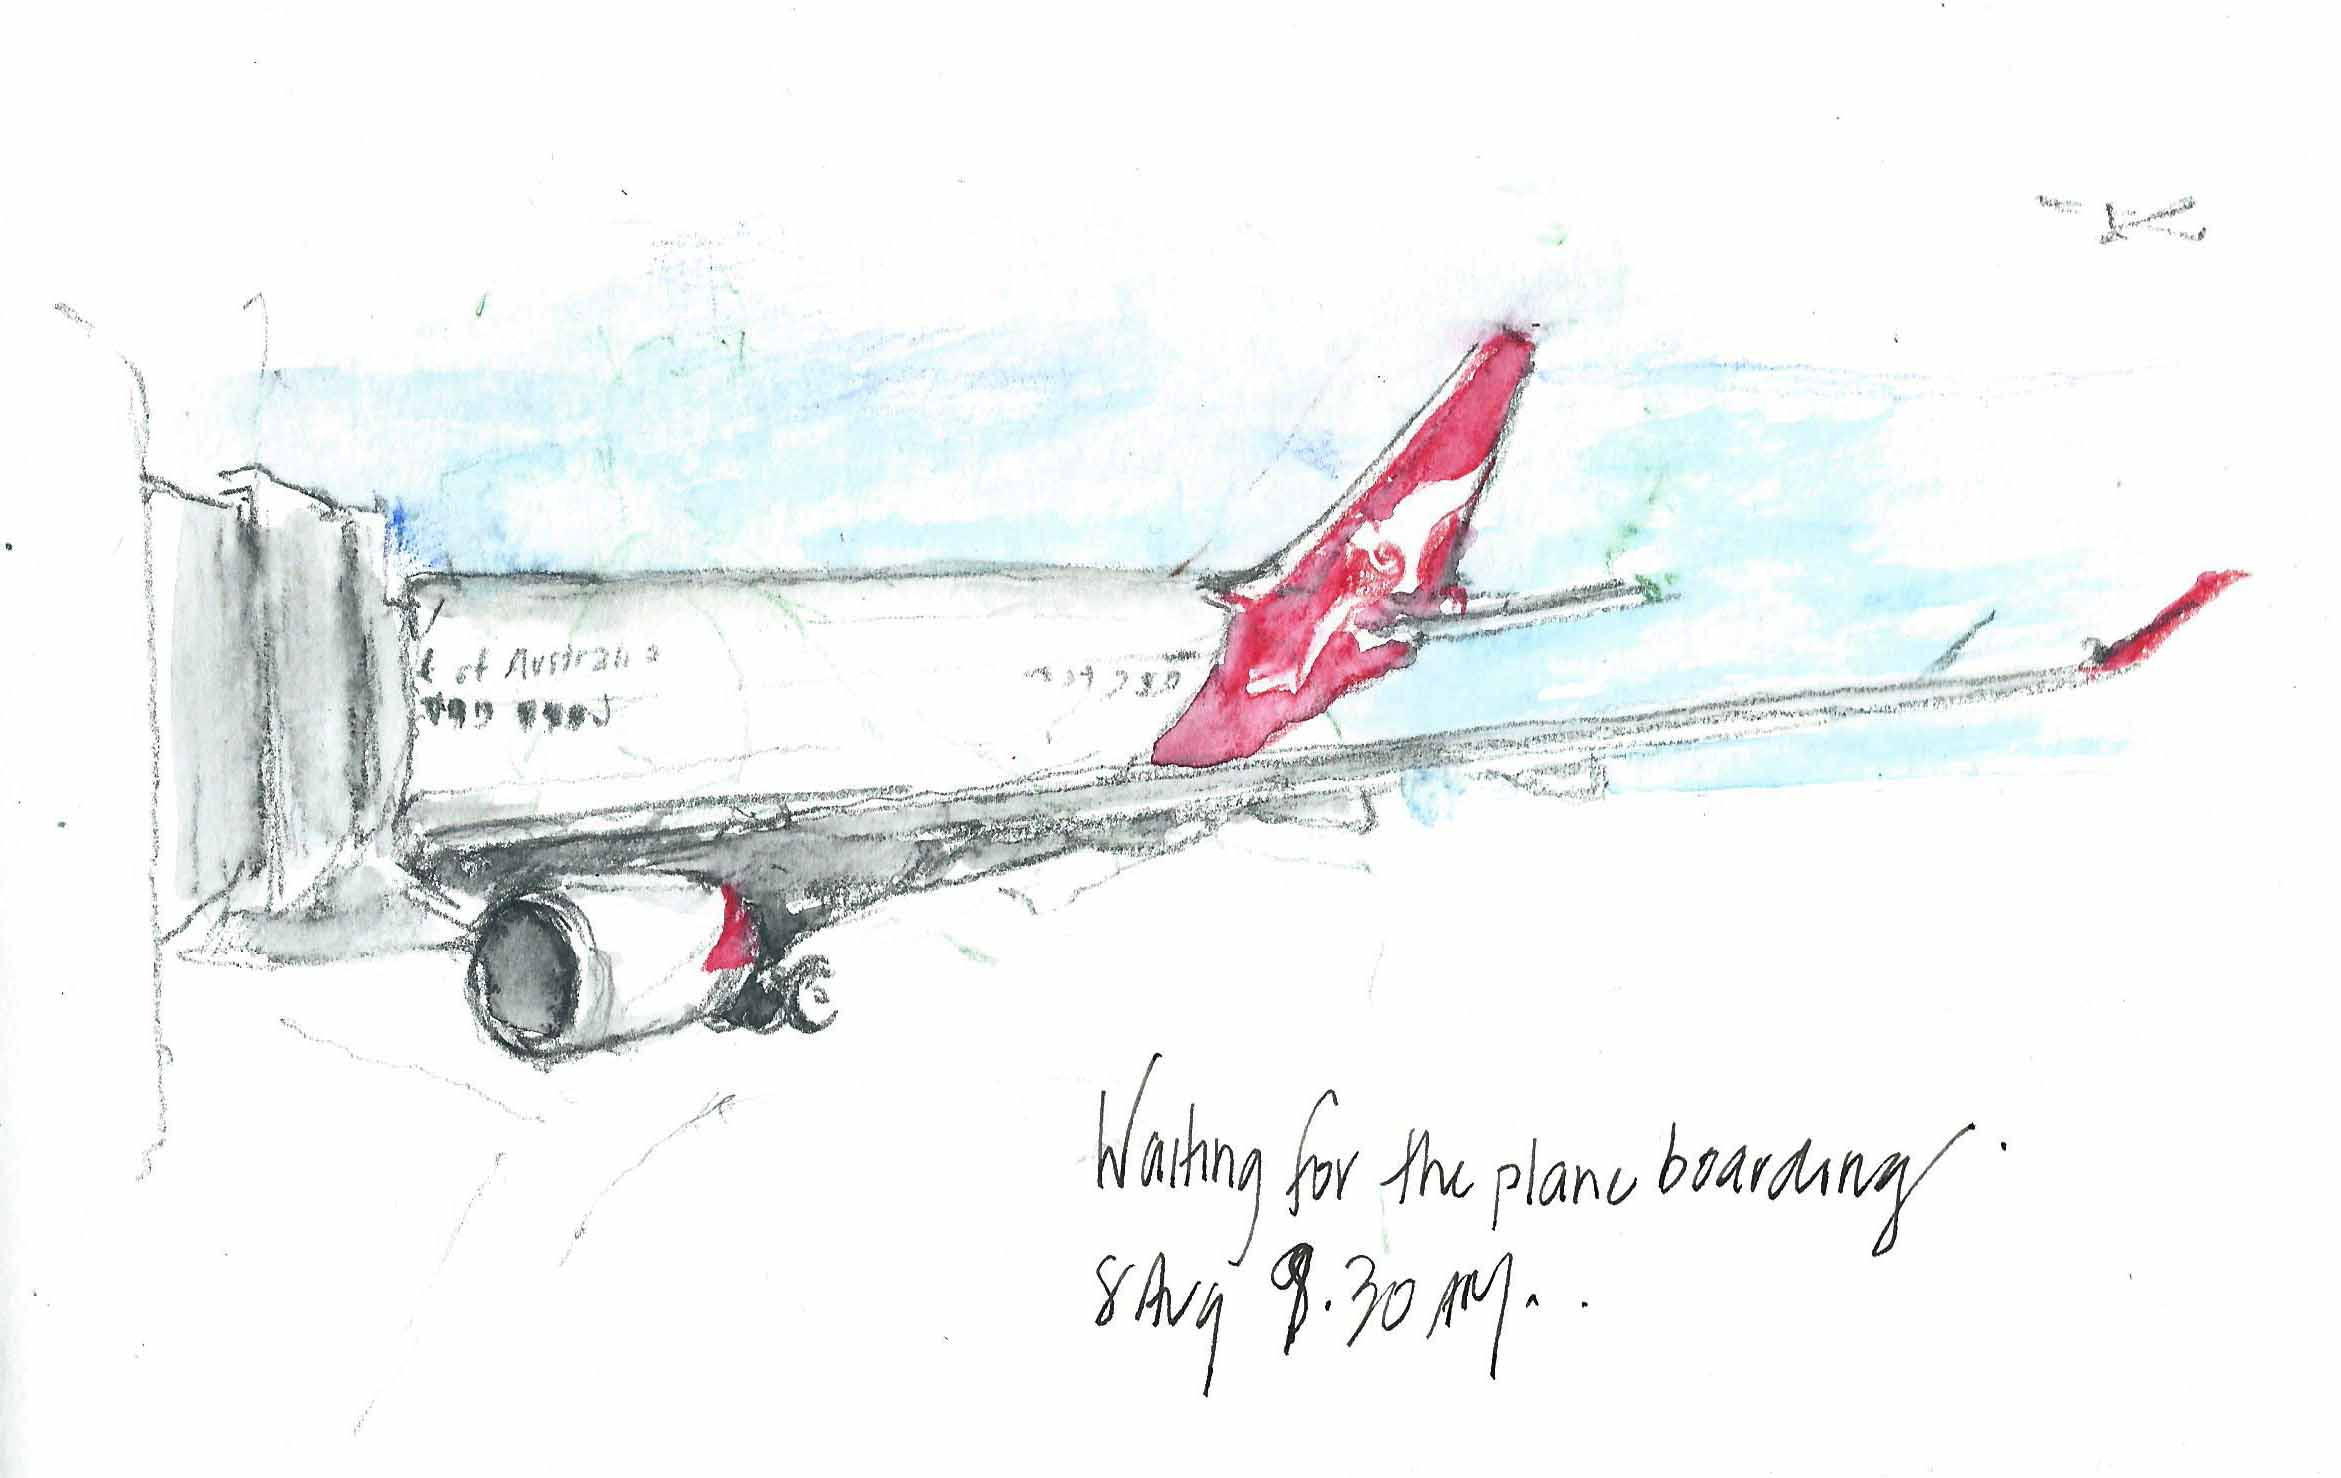 I Always Arrive Early At The Airport And Enjoy Time That Can Spend Sketching Planes Dont Get To Draw Plane Am Travelling In